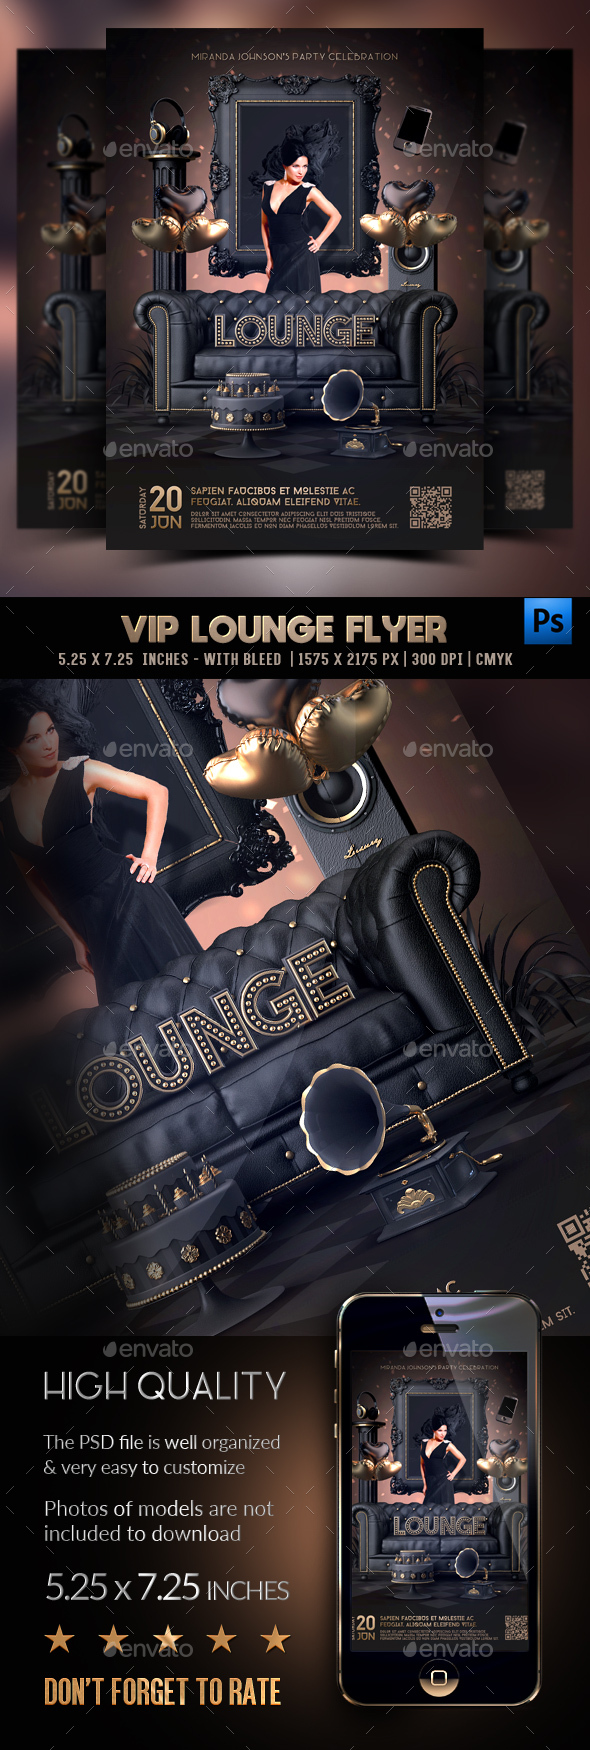 Flyers PSD – Vip Lounge Flyer – Download